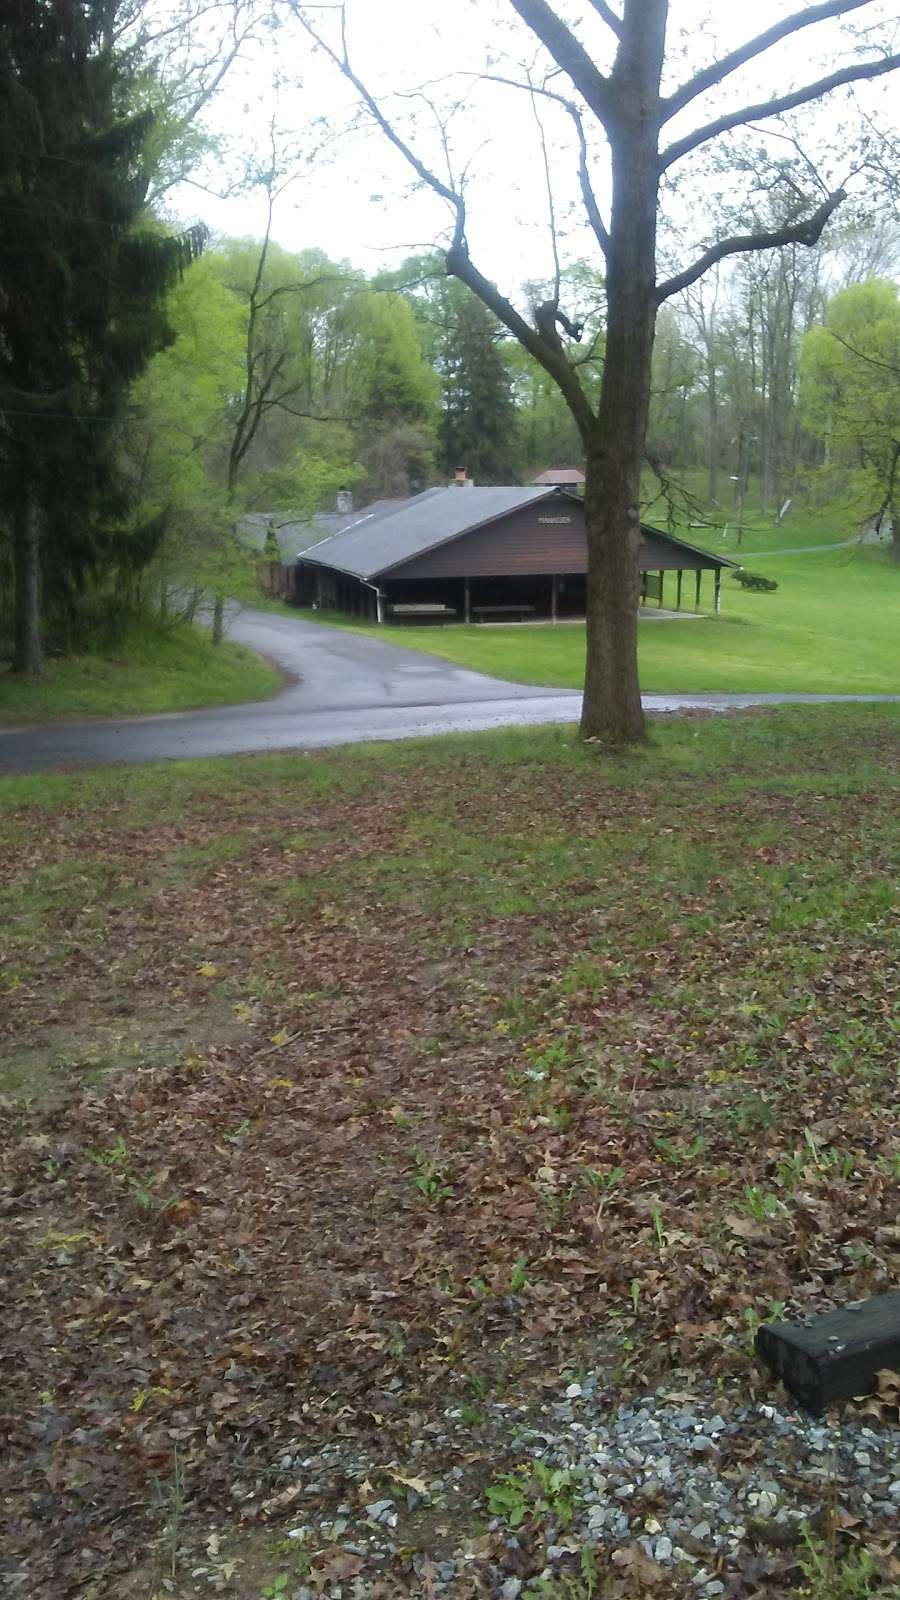 Promised Land Campground - campground    Photo 10 of 10   Address: 301 Boyscout Rd, Conestoga, PA 17516, USA   Phone: (717) 725-0169